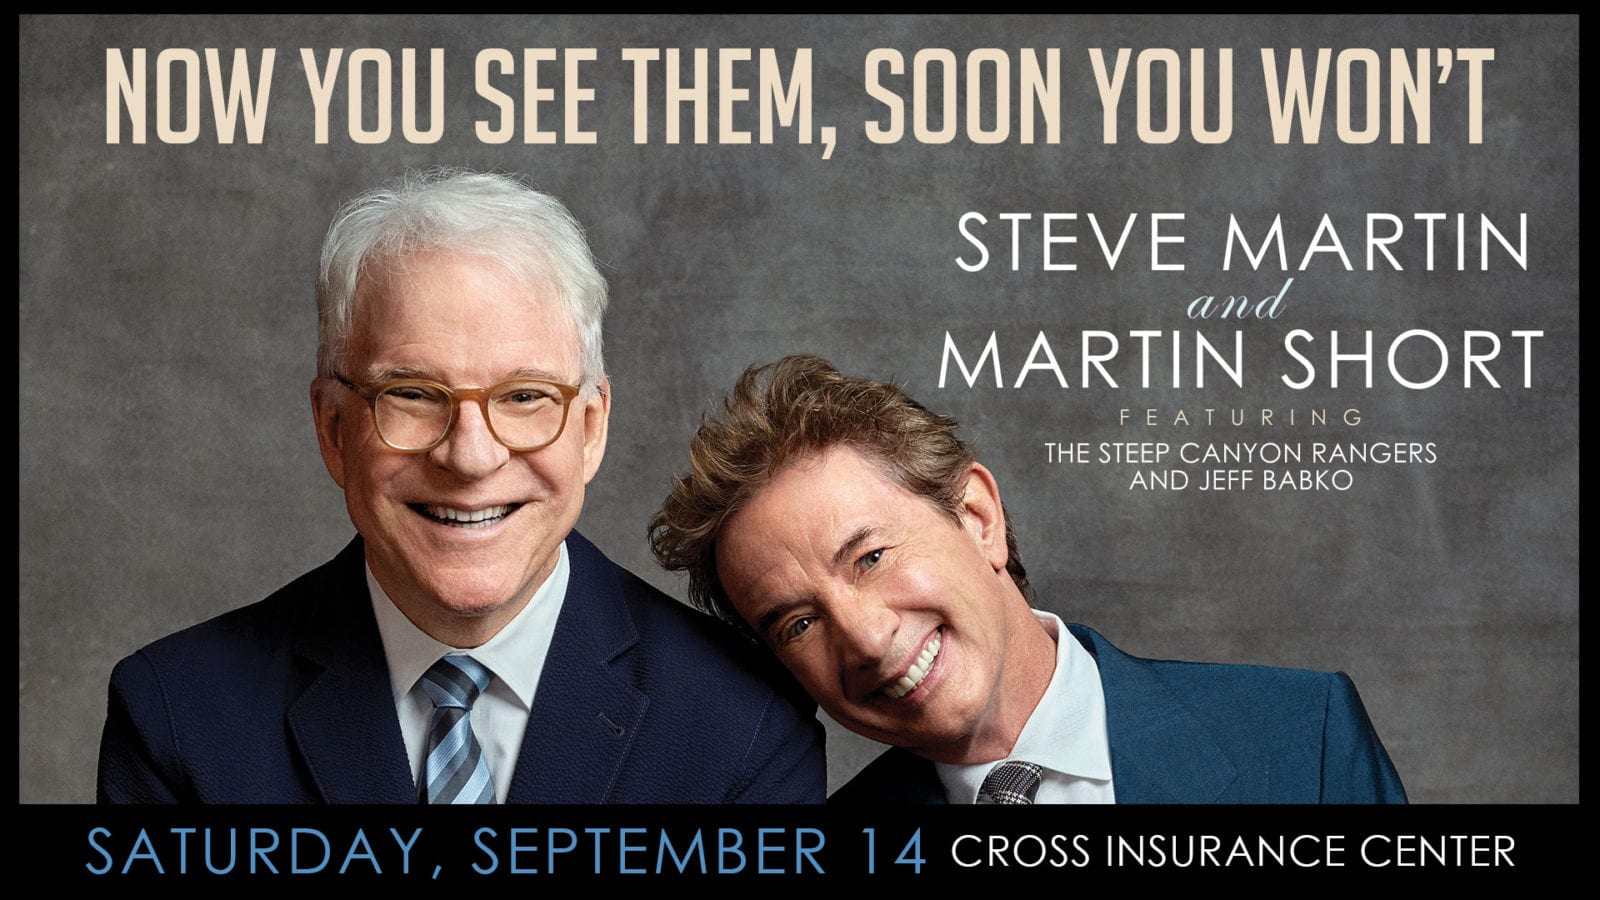 now you see them, soon you won't steve martin and martin short graphic